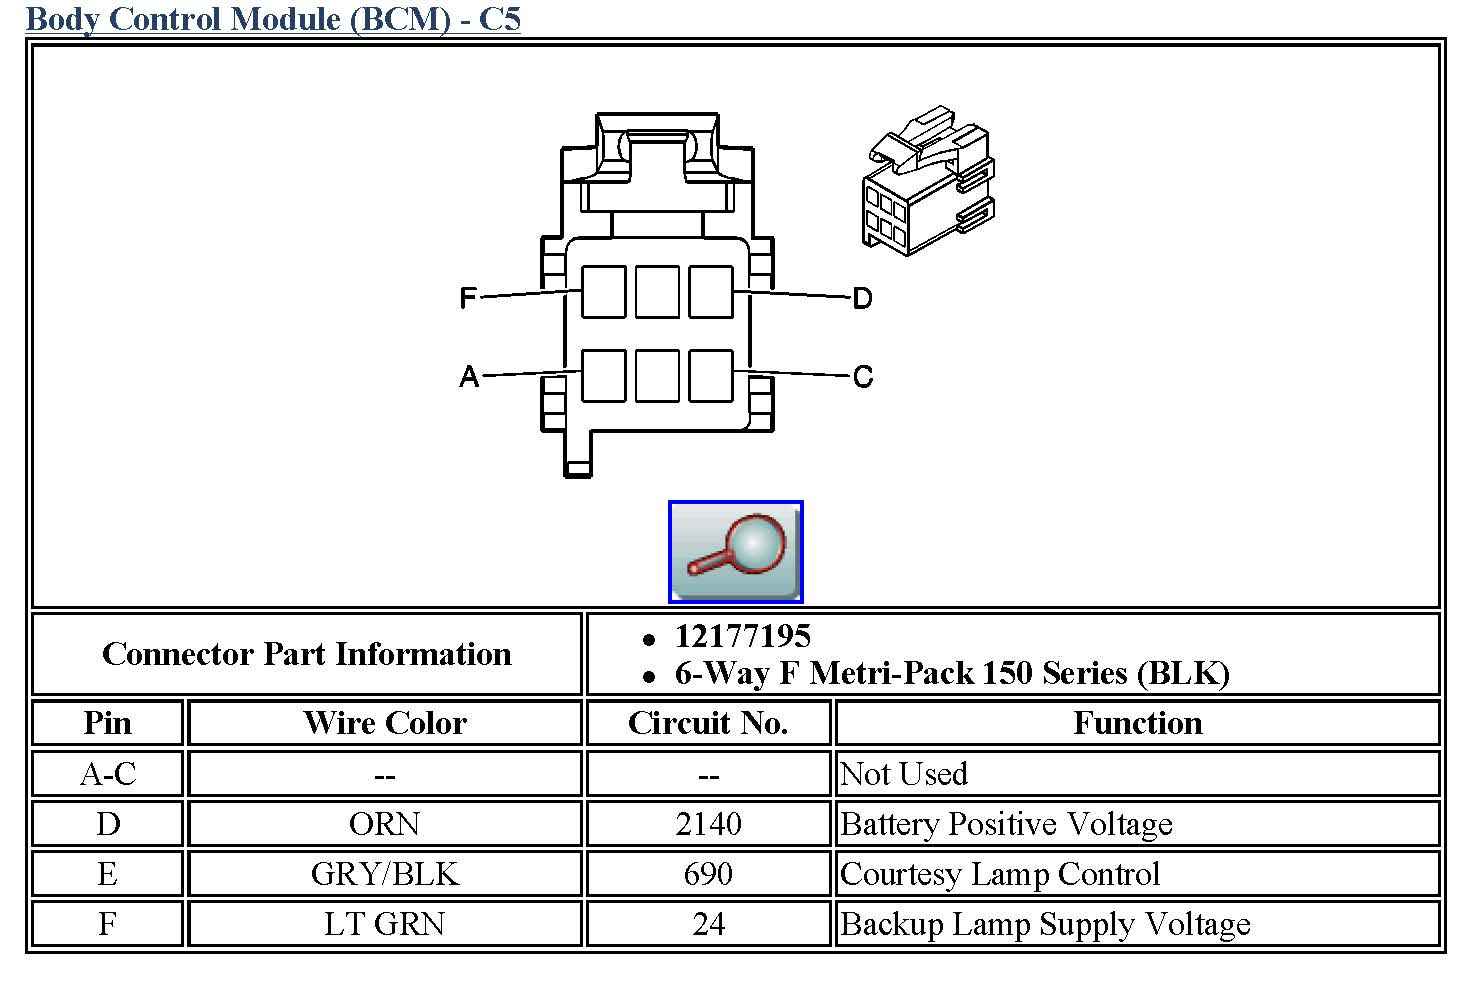 hight resolution of 2009 chevy alalanche body control module wiring diagram